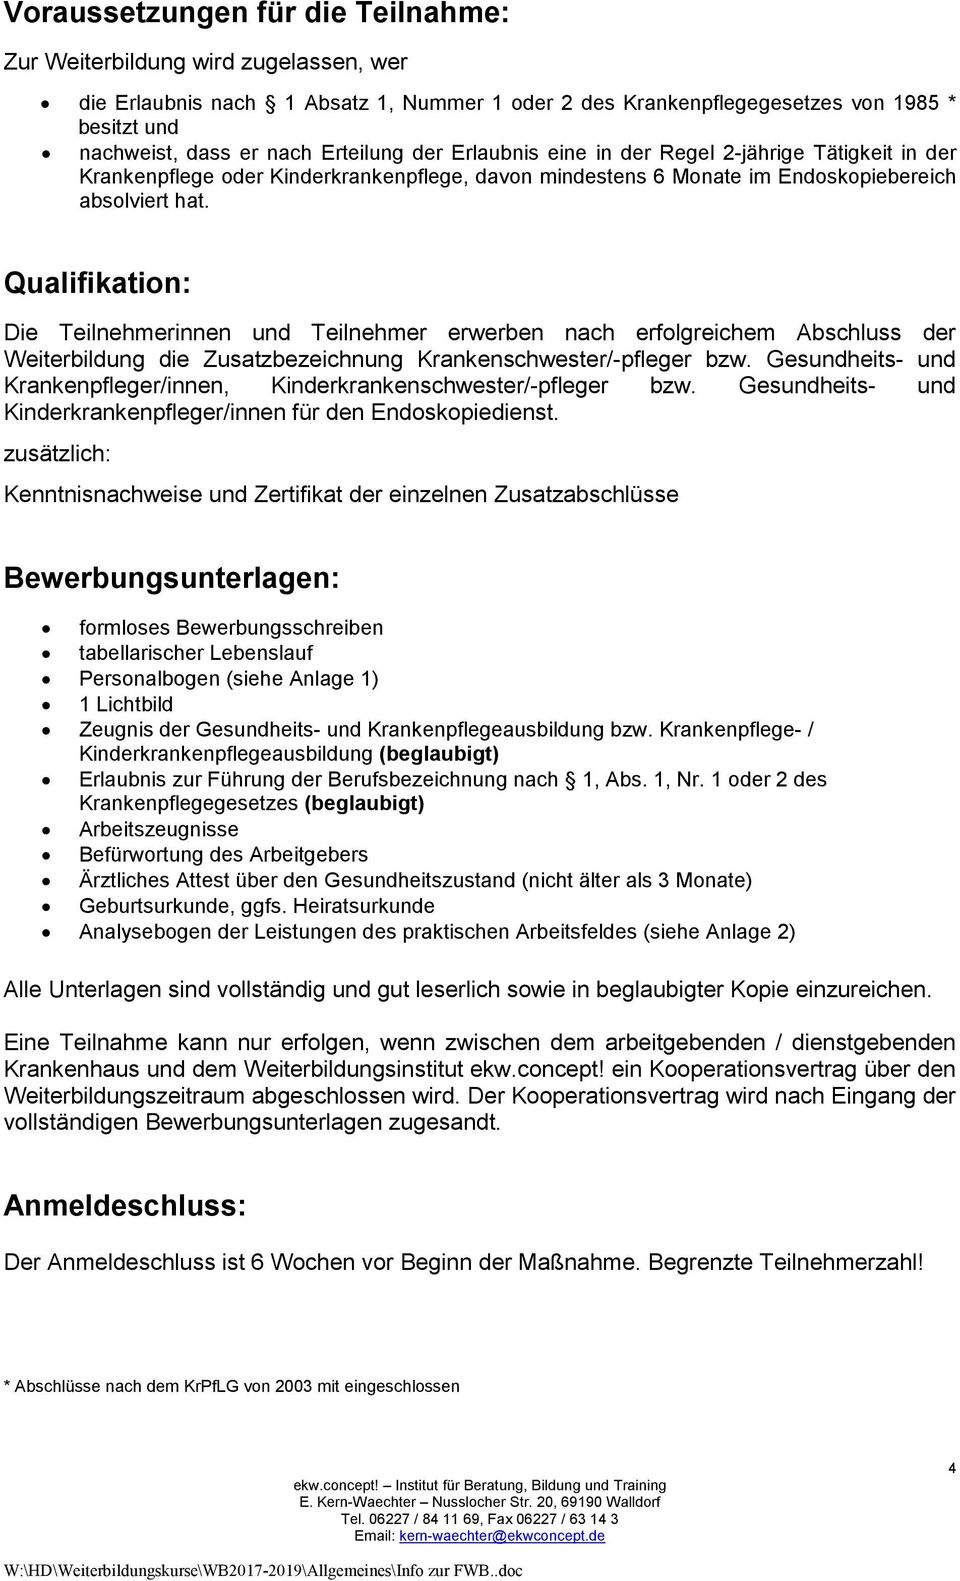 Groß Lieferkettenzusammenfassung Bilder - Entry Level Resume ...